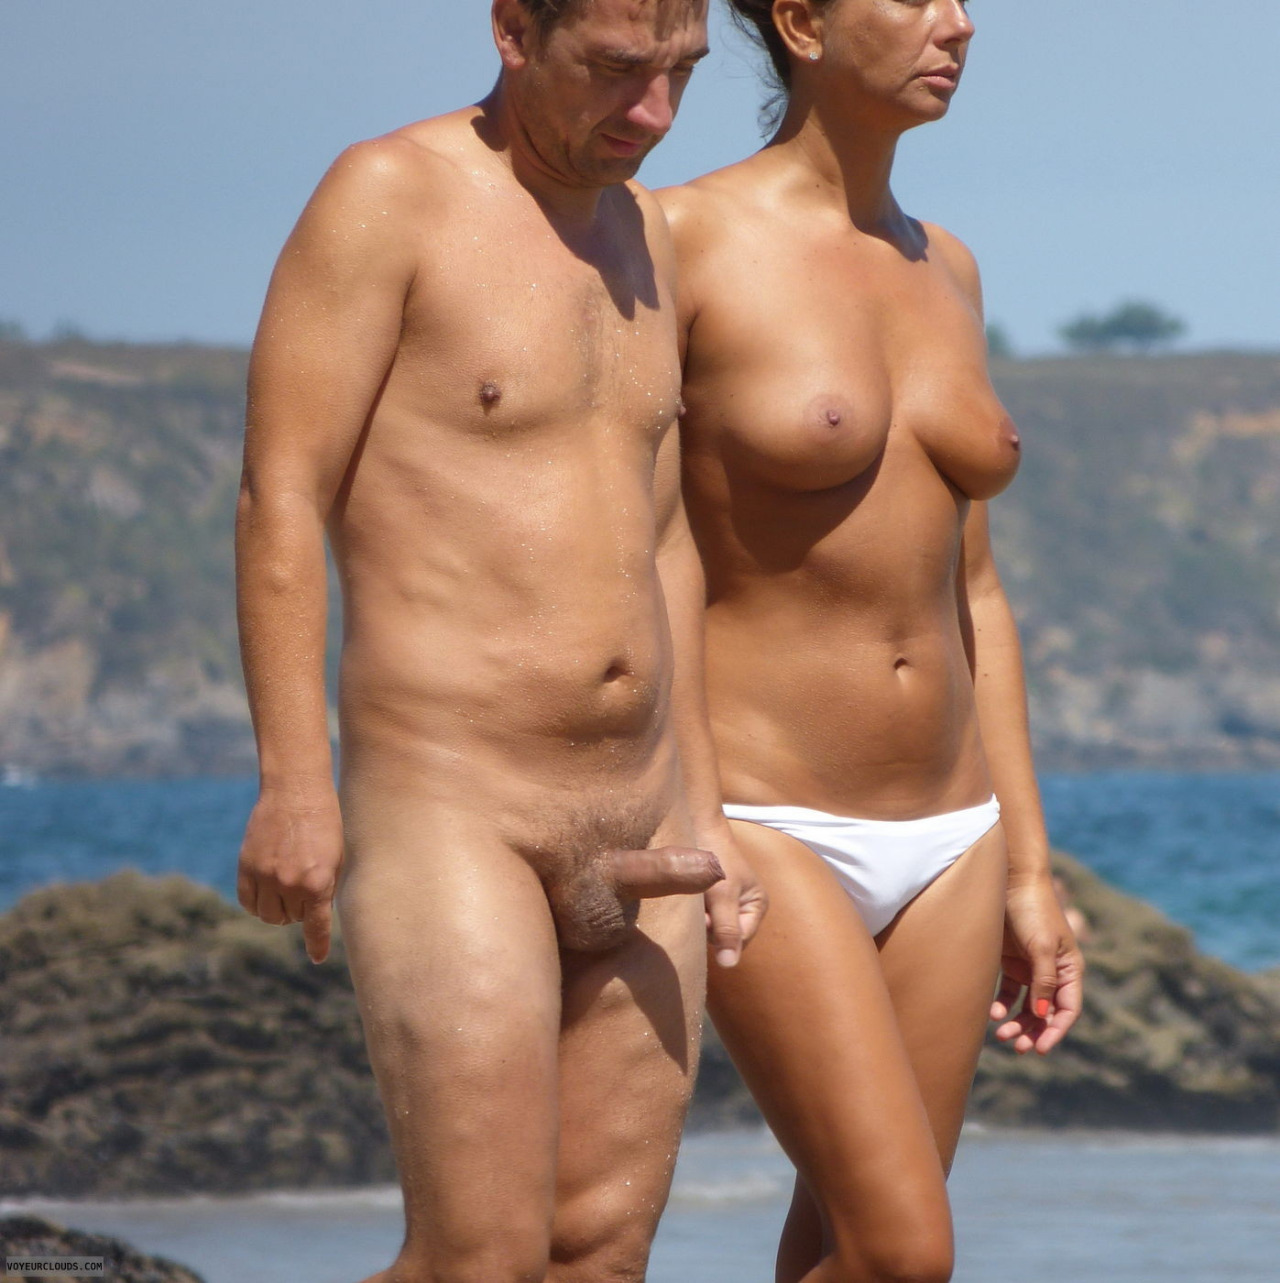 old hot couples naked on beach